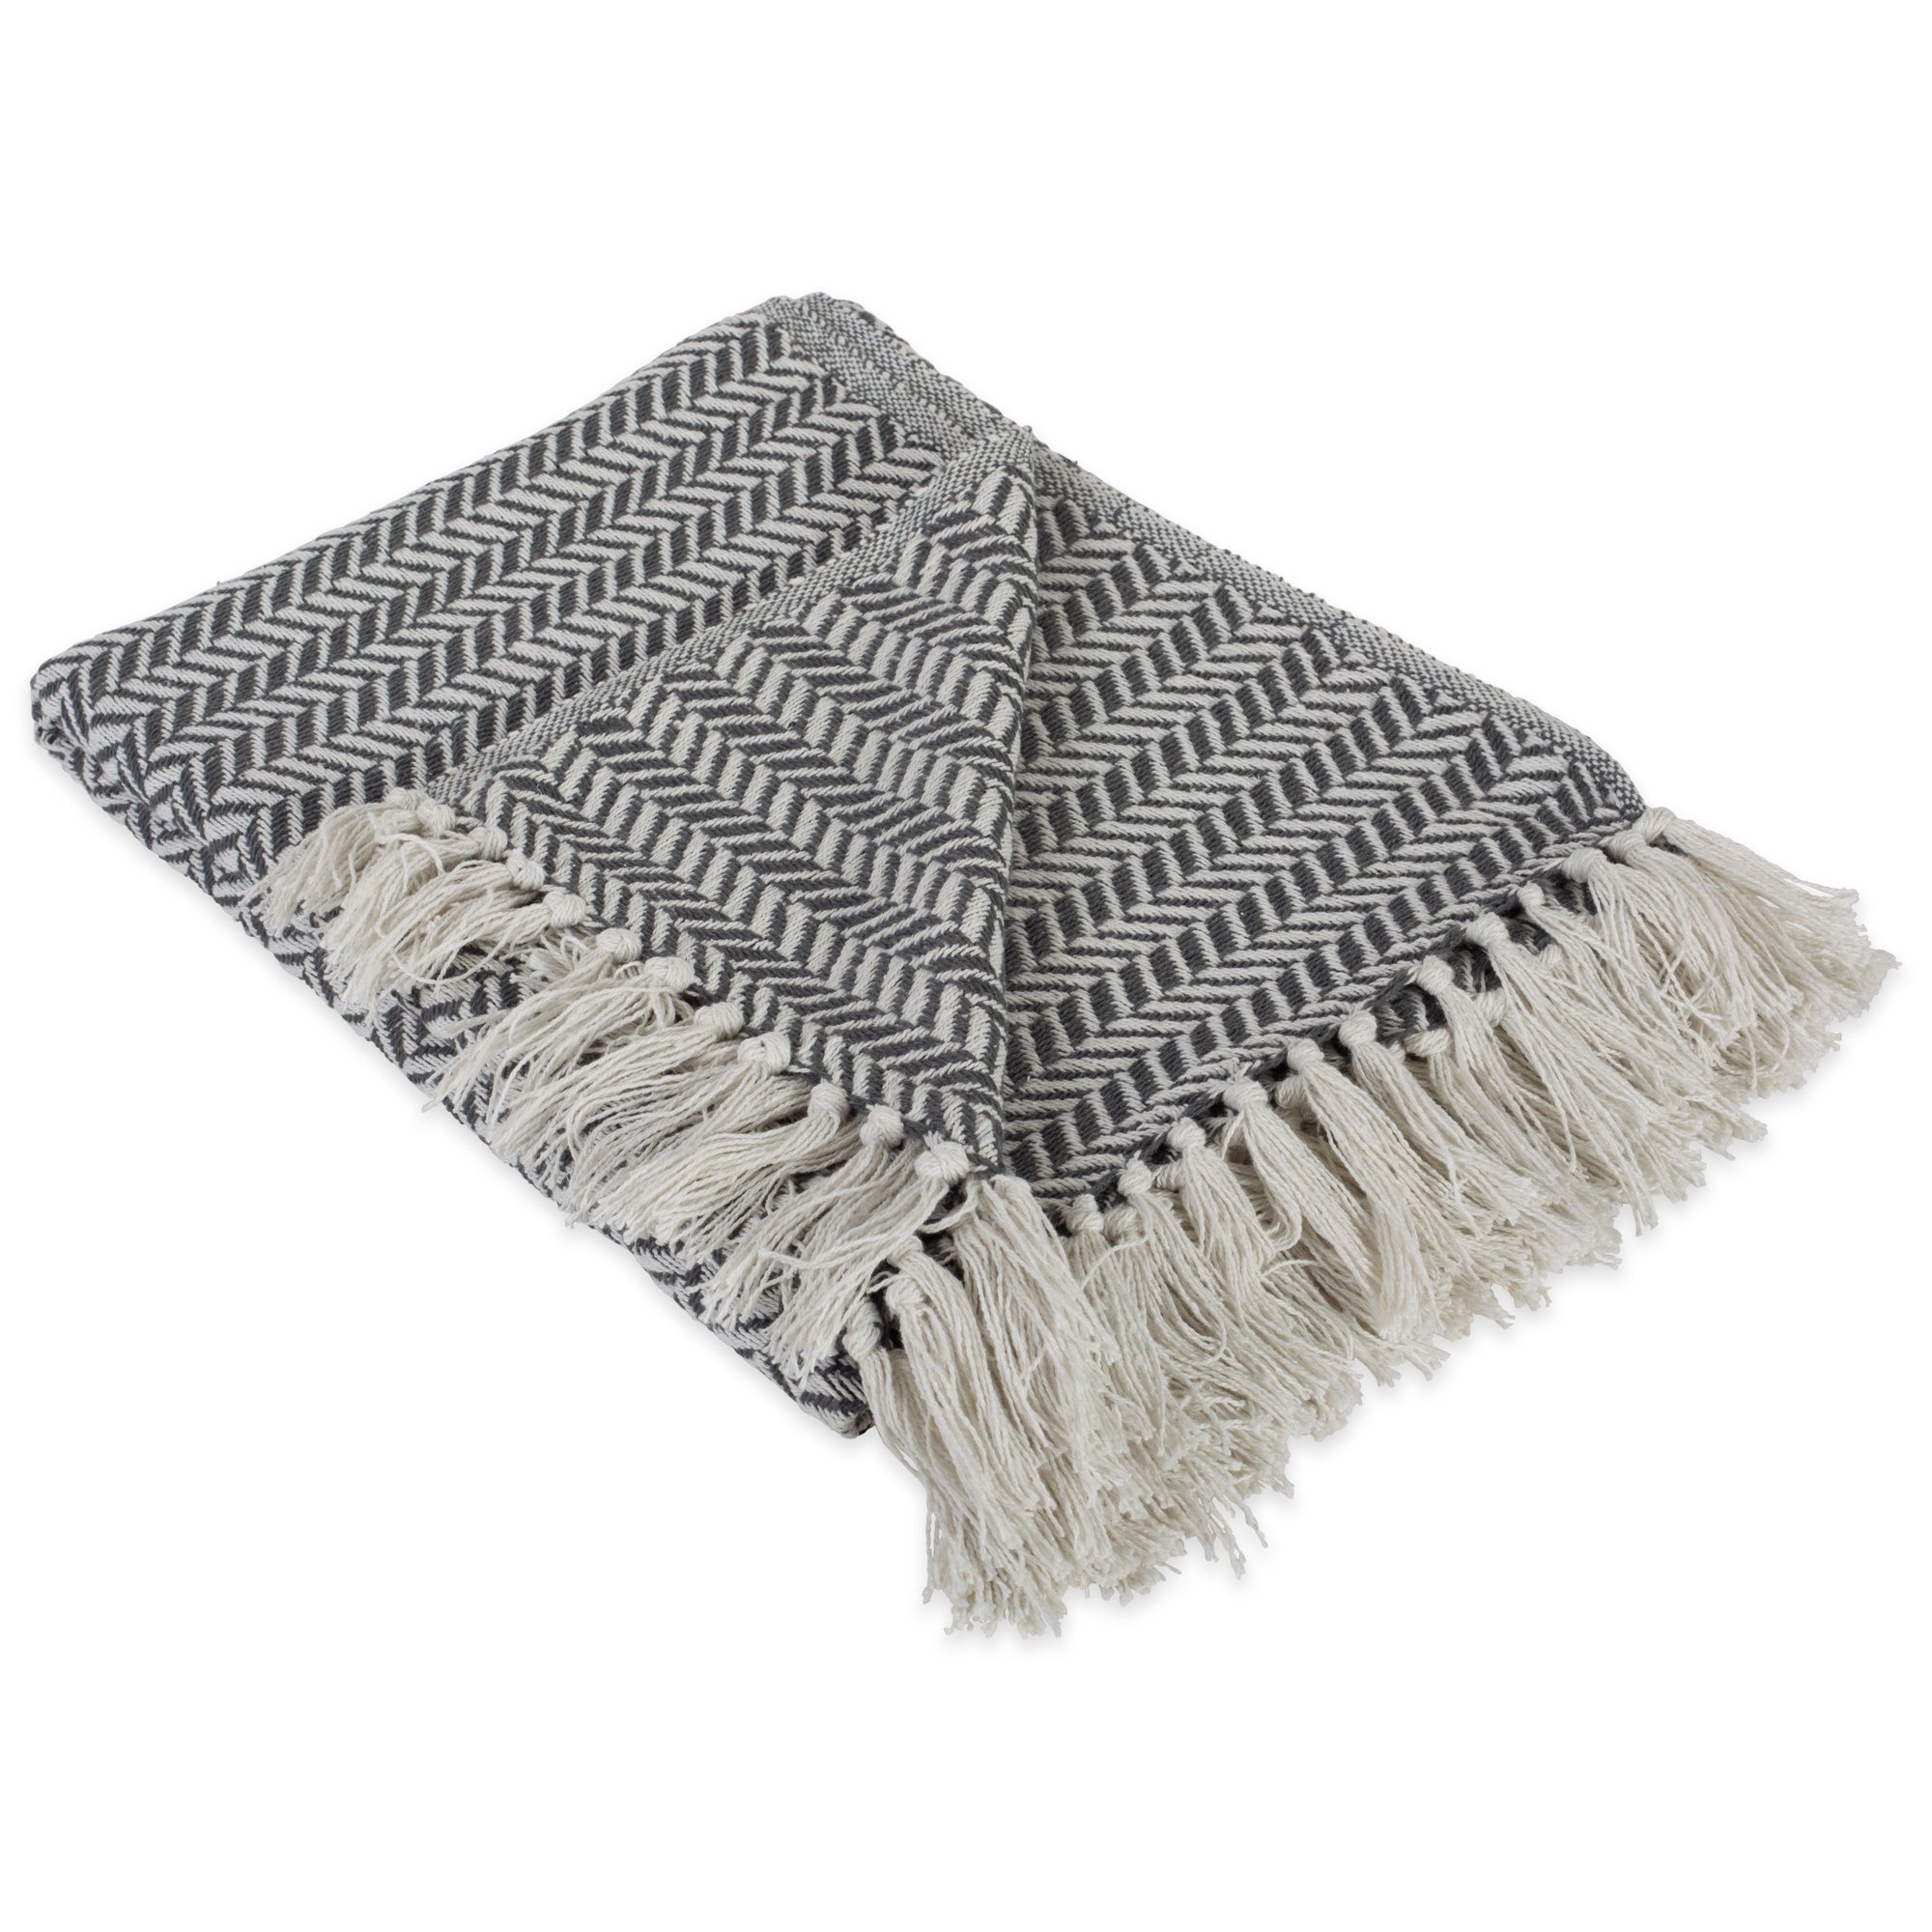 DII Modern Farmhouse Cotton Herringbone Blanket Throw with Fringe For Chair, Couch, Picnic, Camping, Beach, & Everyday Use , 50 x 60'' - Herringbone Chevron Mineral Gray by DII